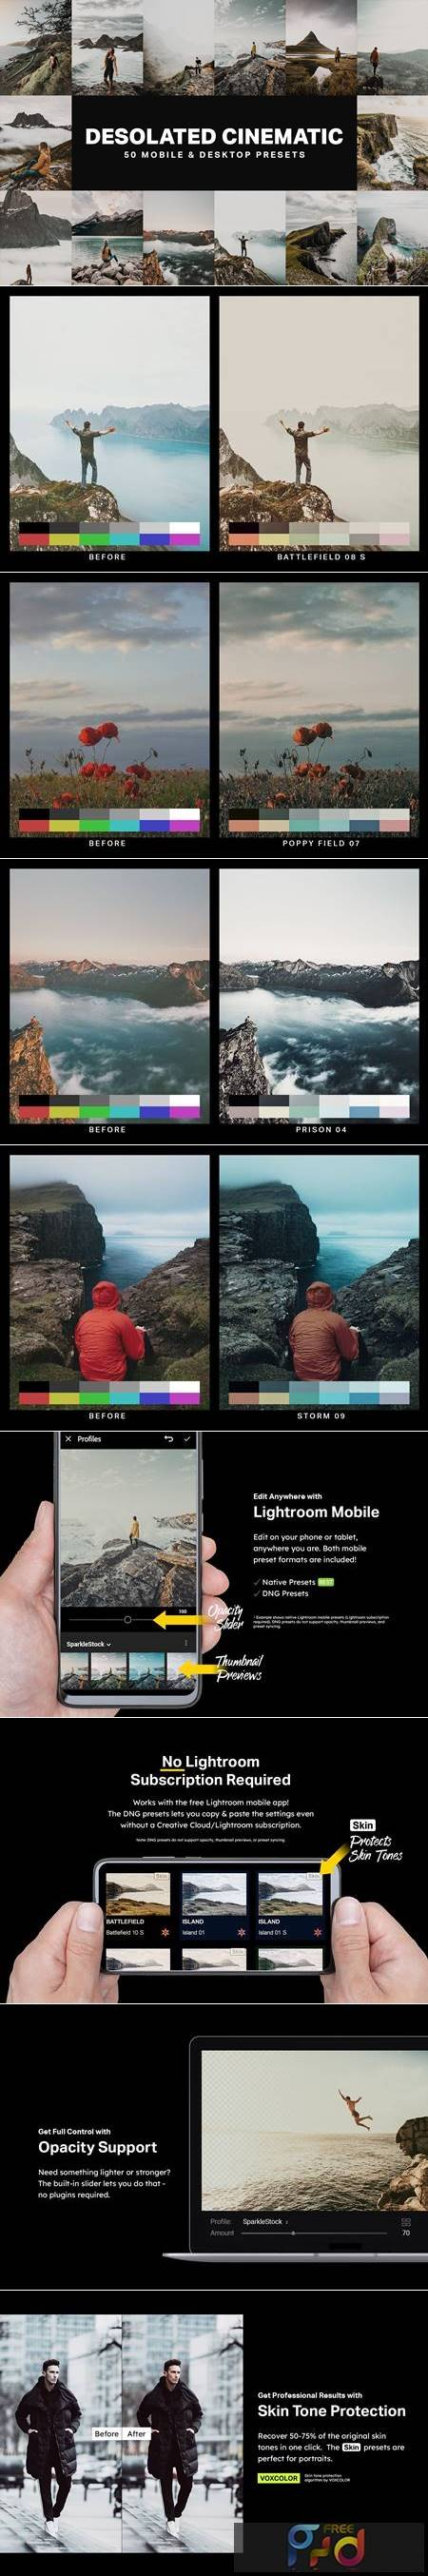 50 Desolated Cinematic Lightroom Presets 4755397 1